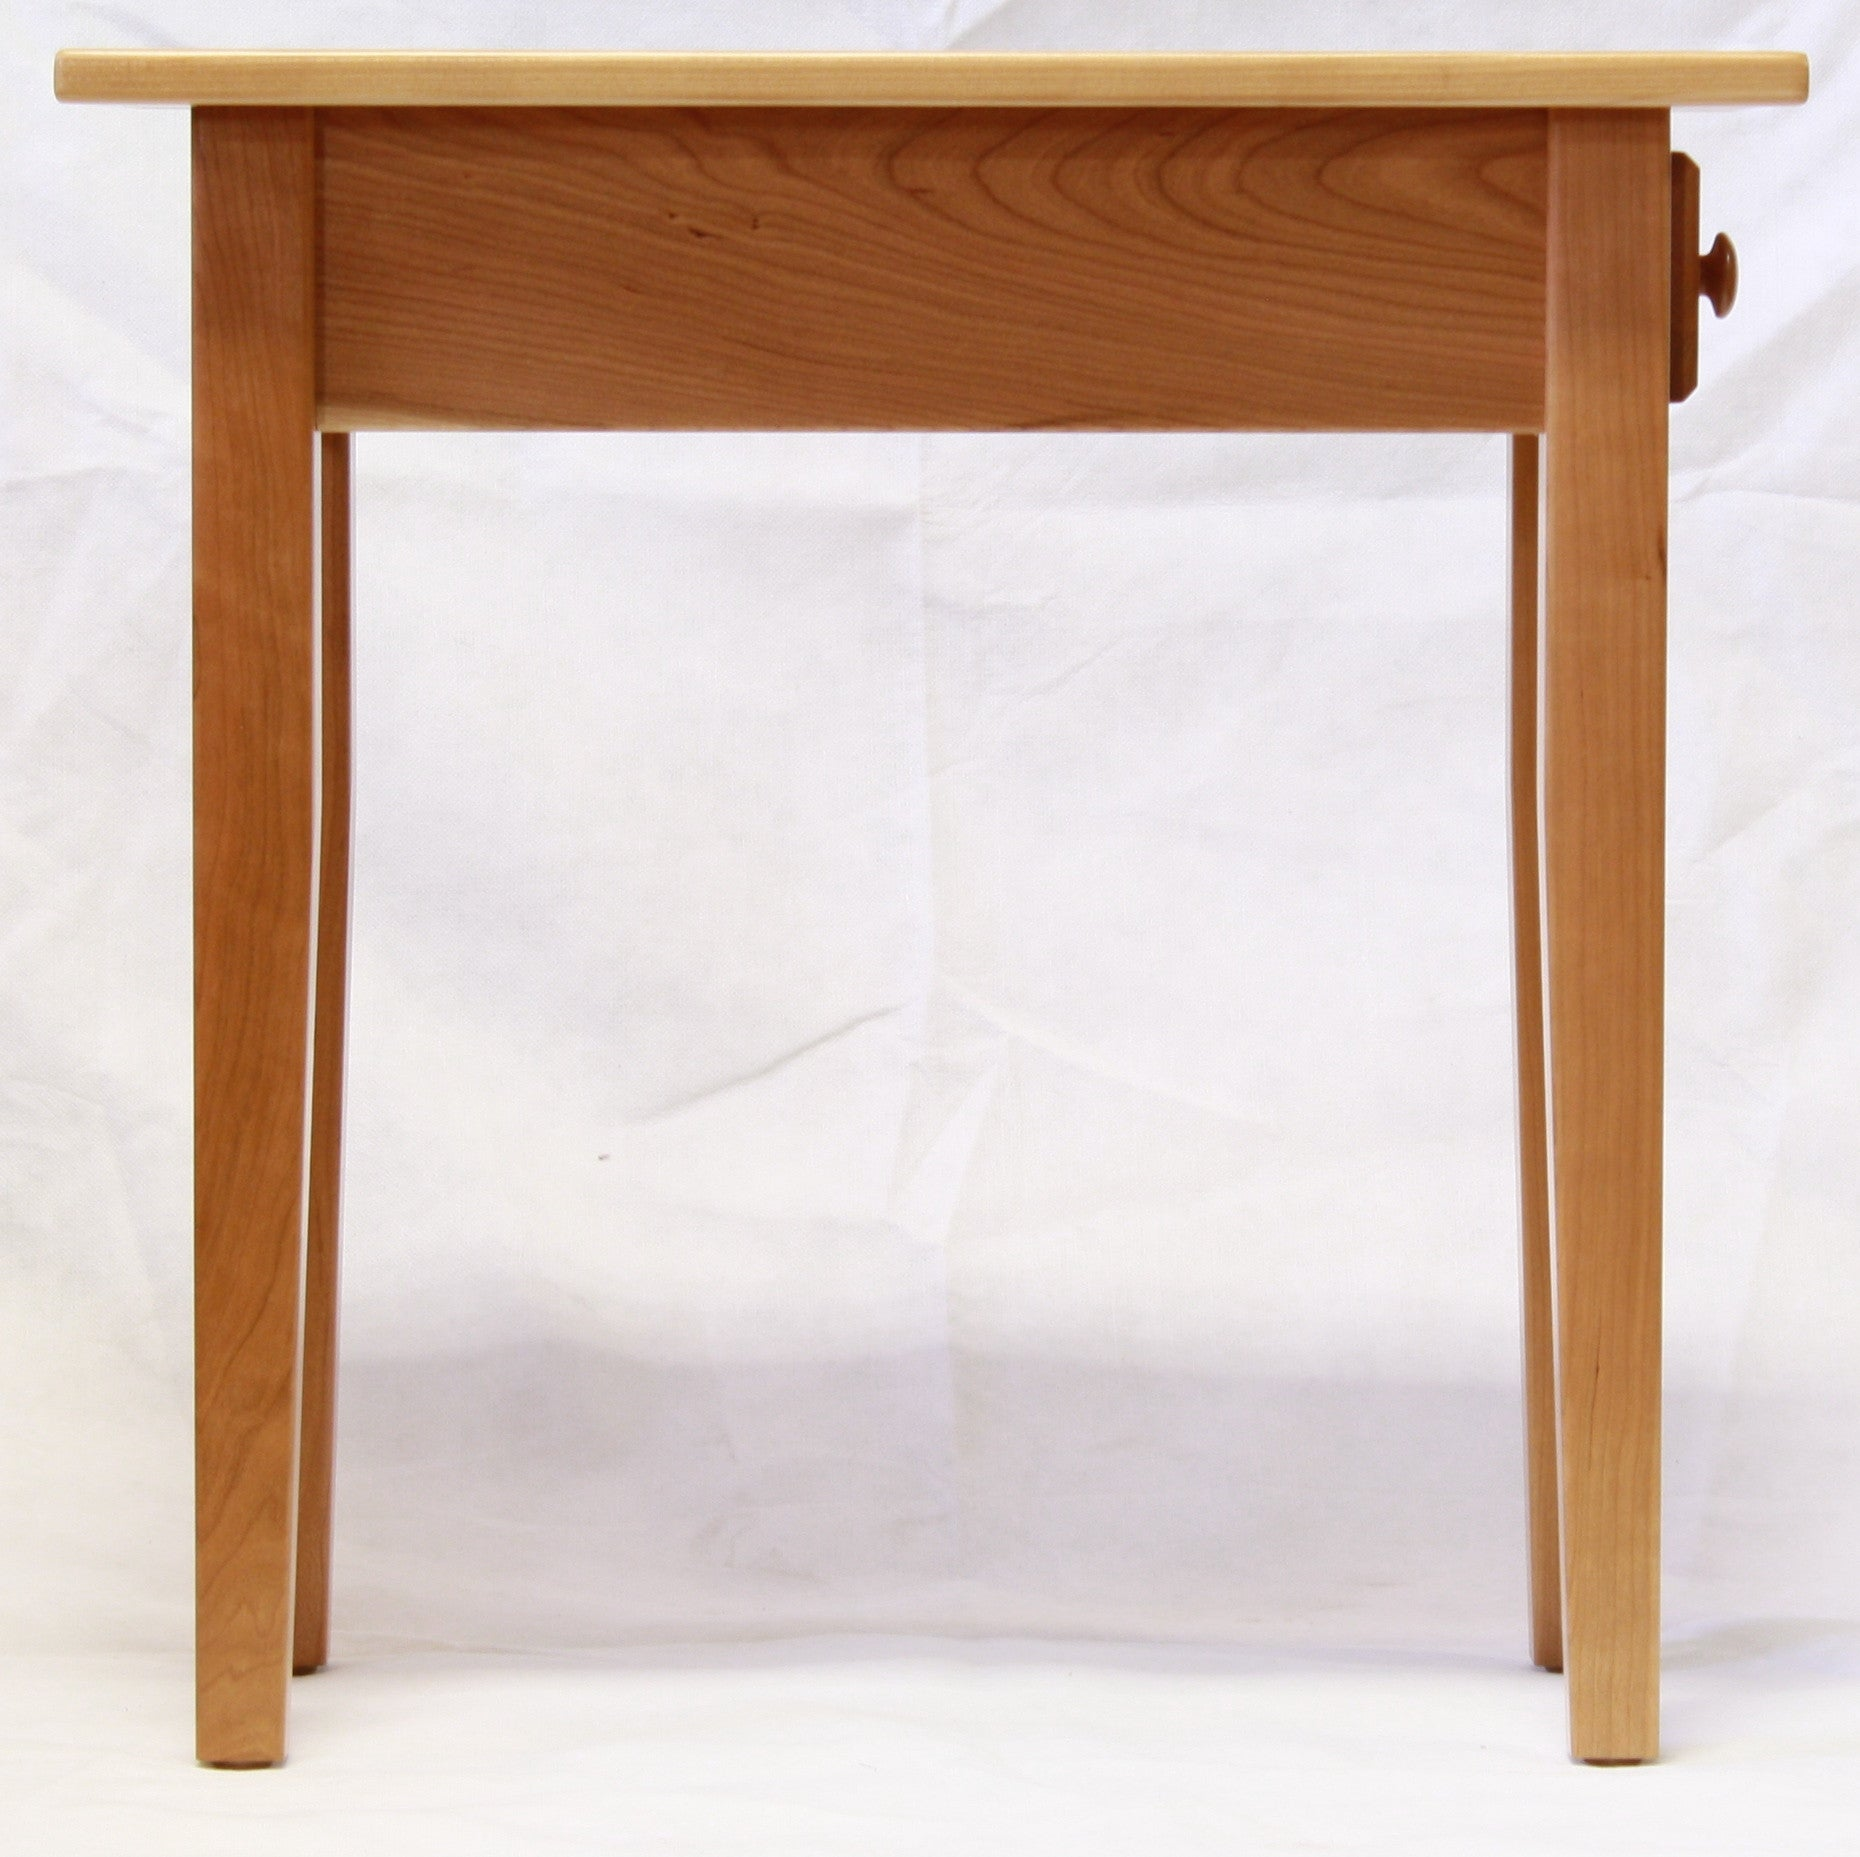 ... Narrow Cherry Shaker Chairside End Table With Drawer, , Occasional  Tables   Endicott Home Furnishings ...